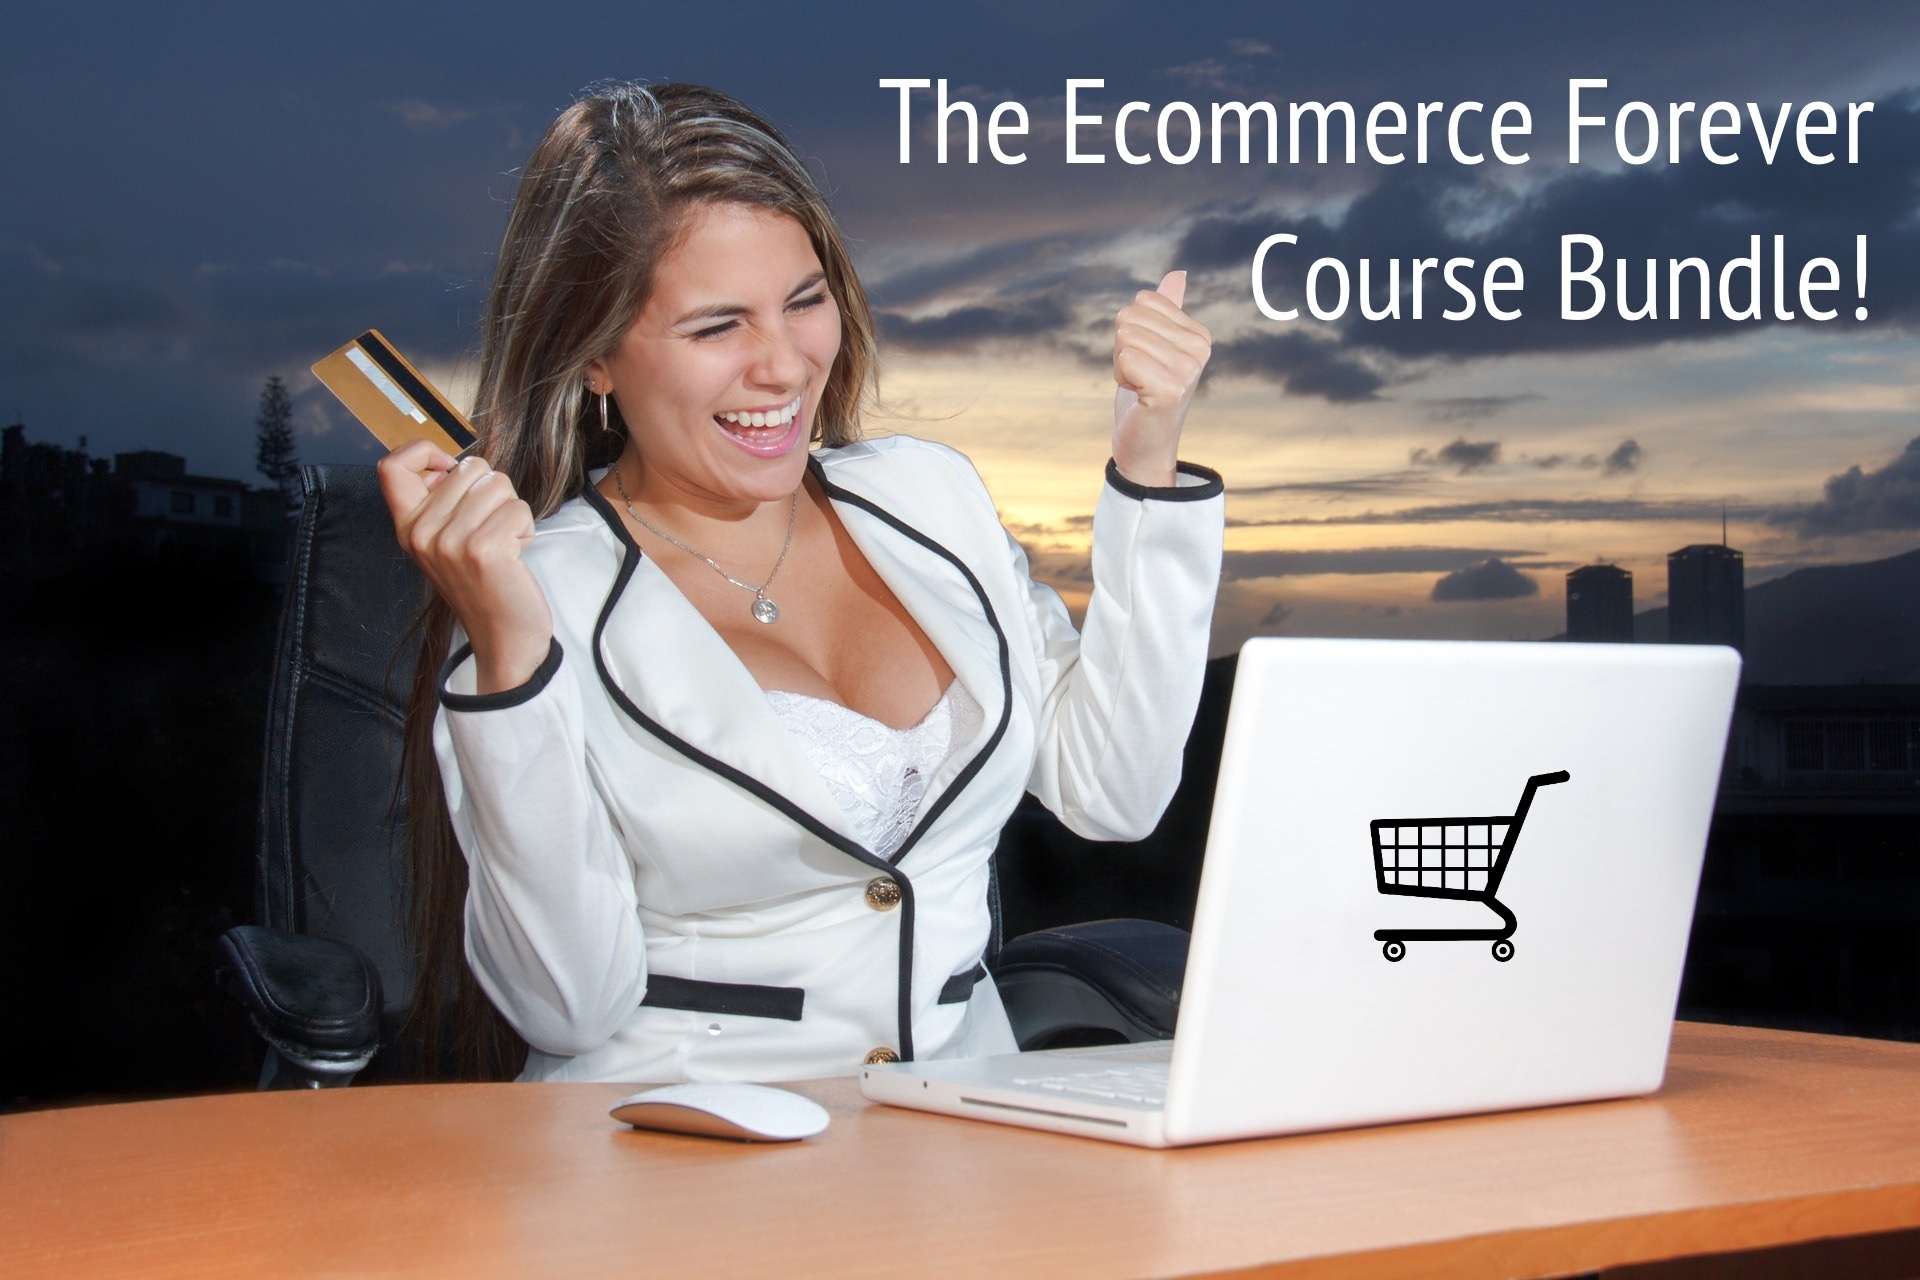 The Ecommerce Forever Course Bundle!